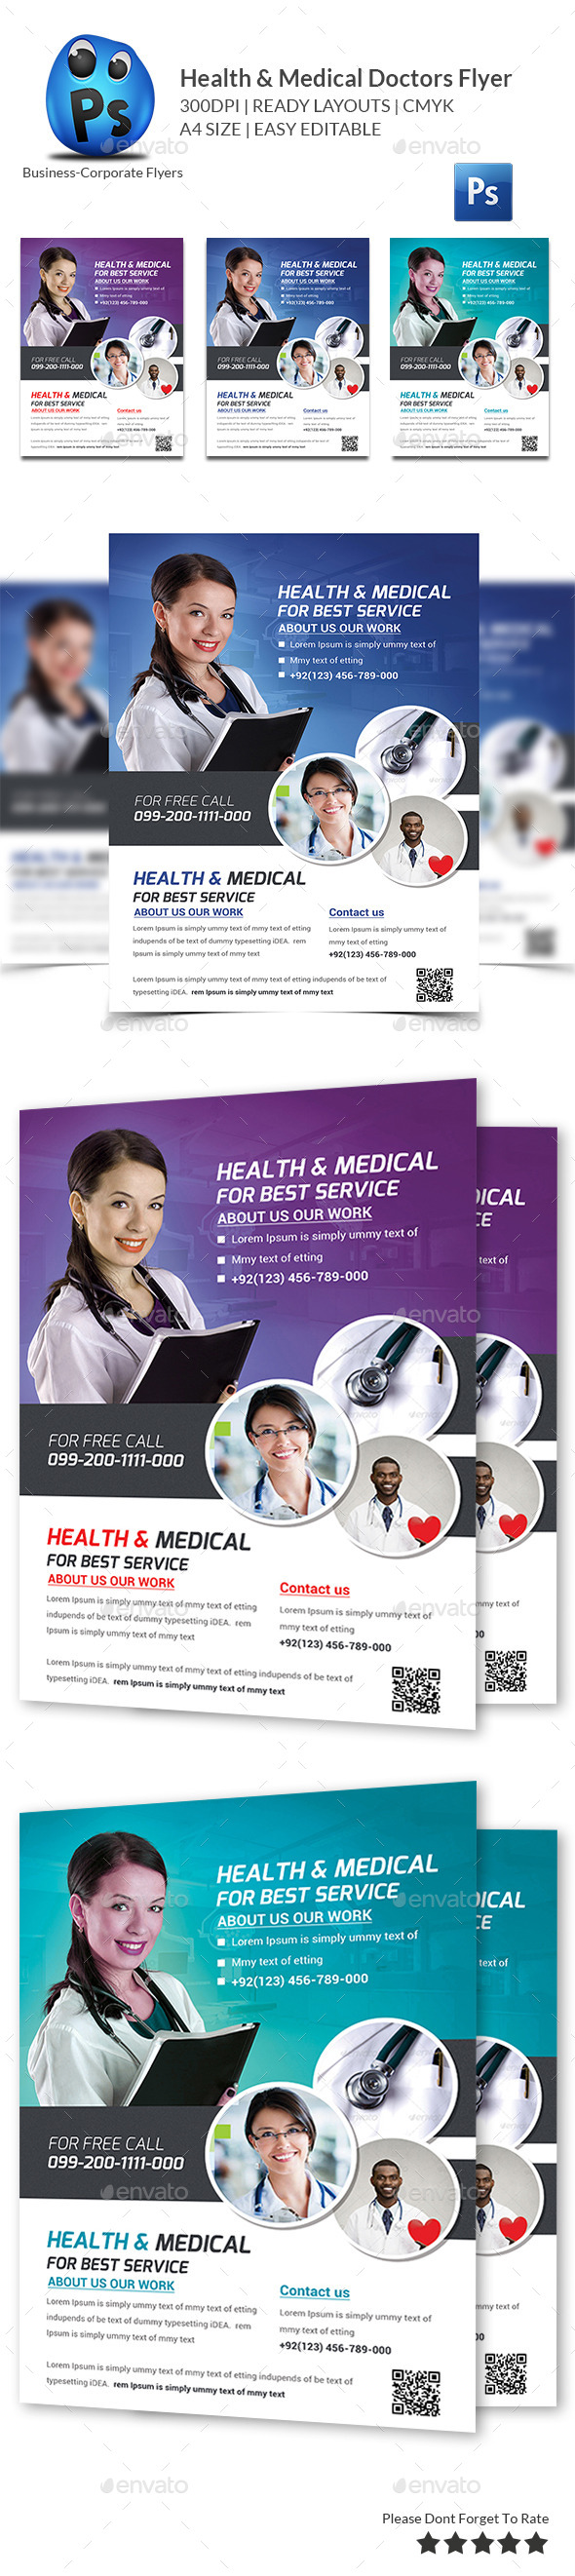 GraphicRiver Health & Medical Doctors Flyer Template 11258426